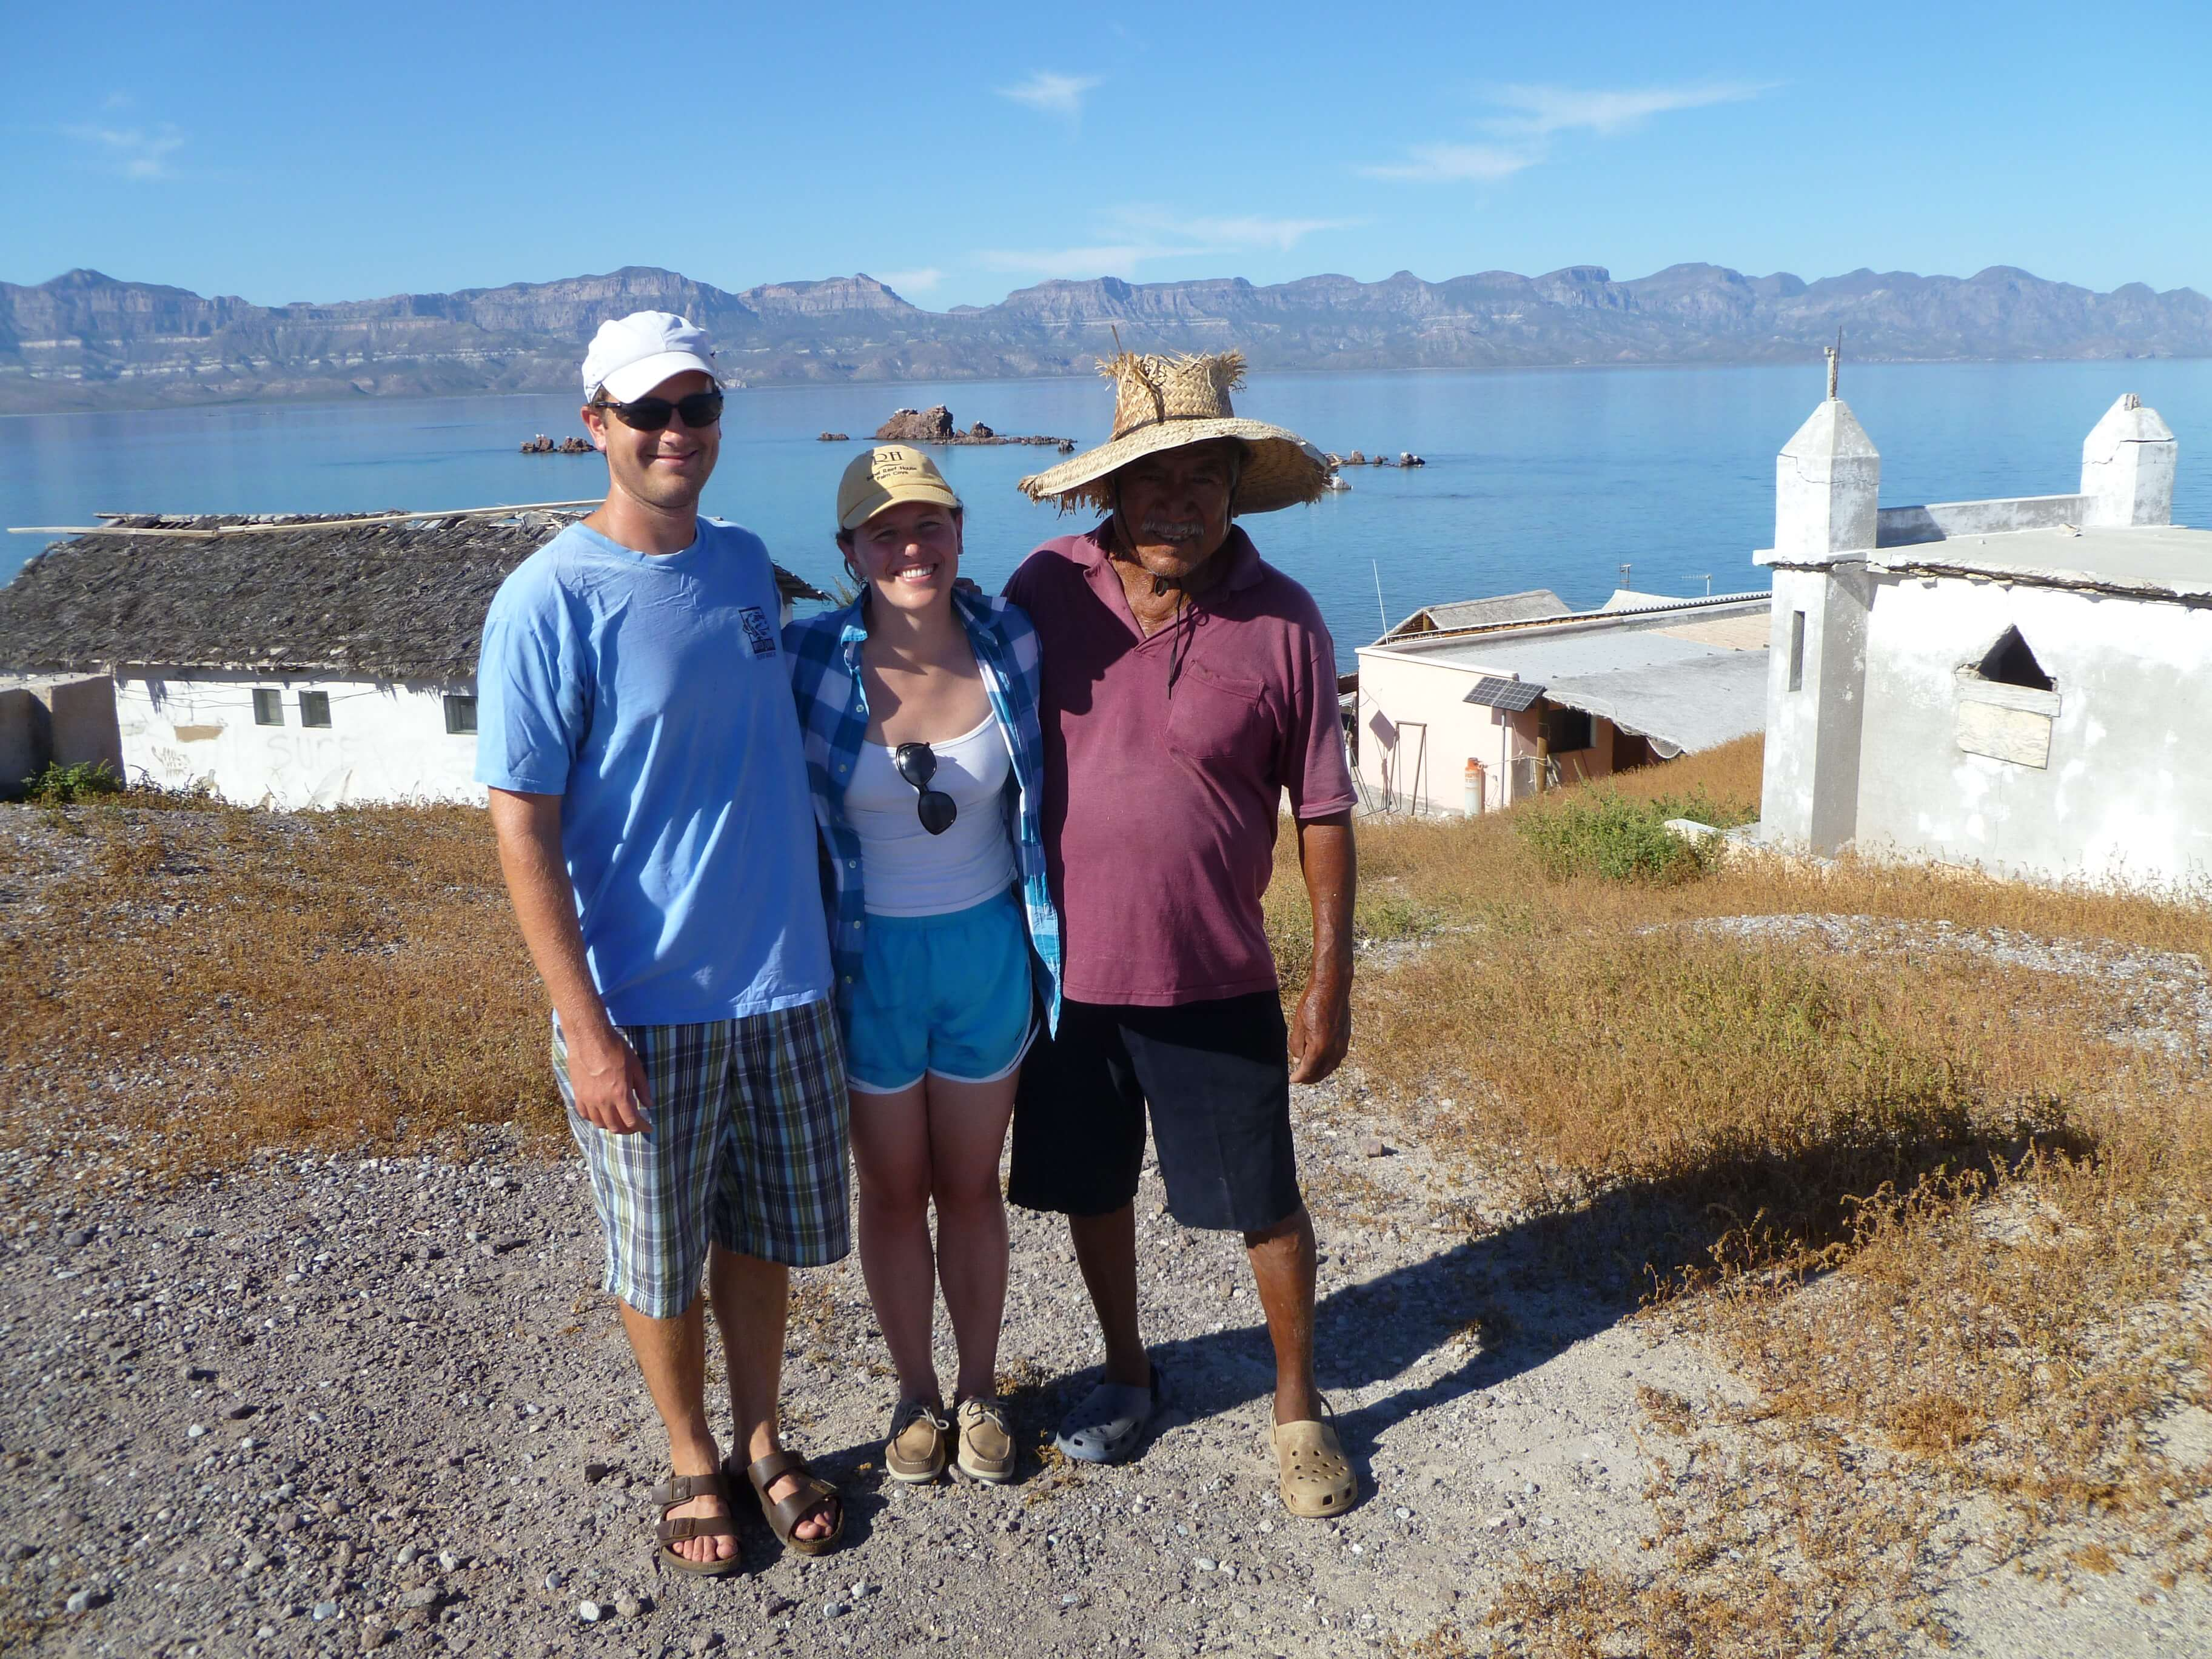 Meeting Manuel of Isla Coyote, a 6-person fishing island in the Sea of Cortez